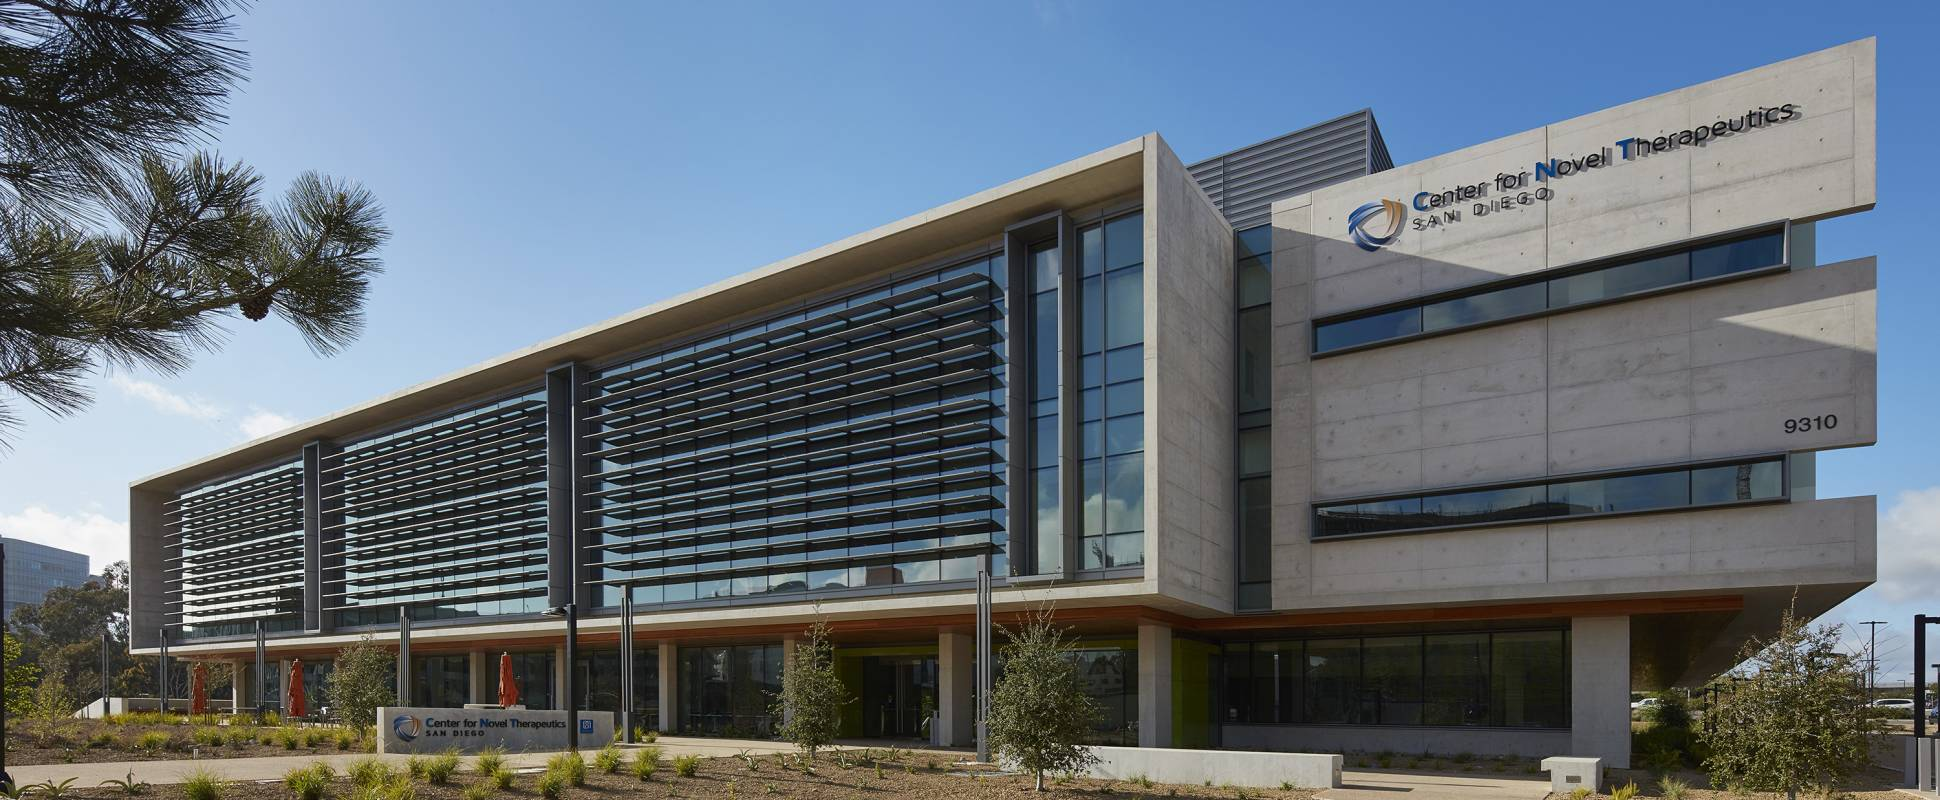 Center for Novel Therapeutics